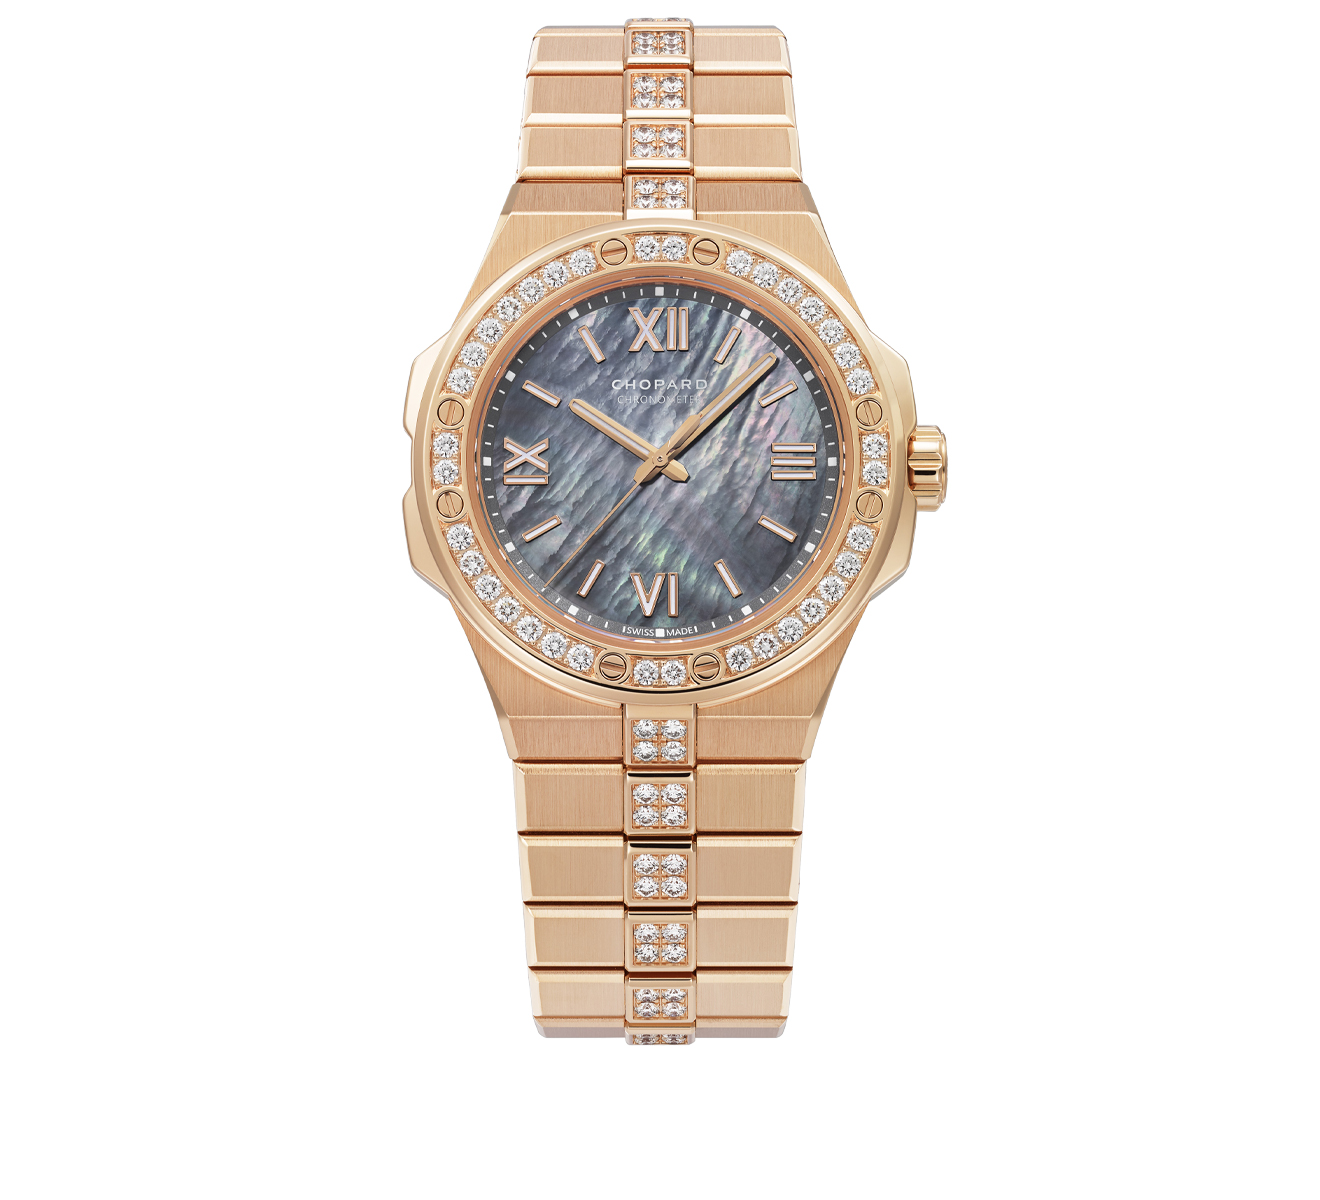 Часы Alpine Eagle Chopard Alpine Eagle 295370-5003 - фото 1 – Mercury